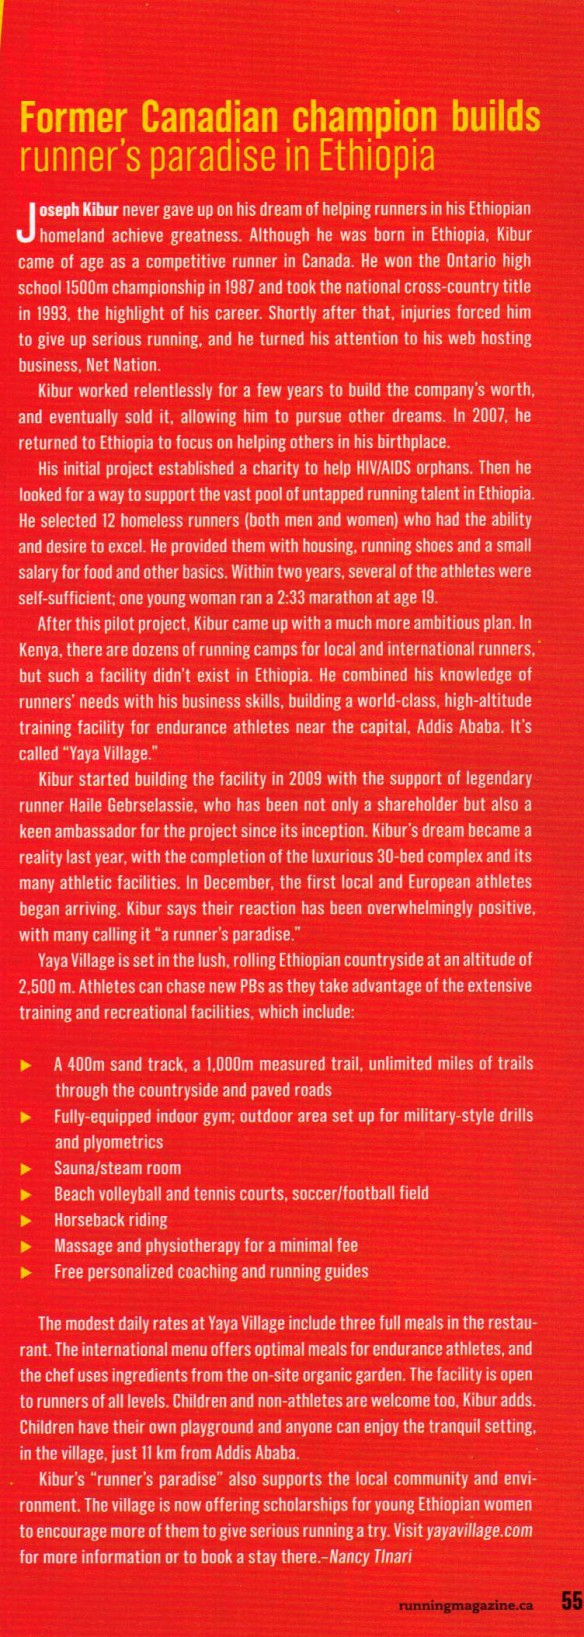 copy of Yaya Village article from Canadian Running Magazine